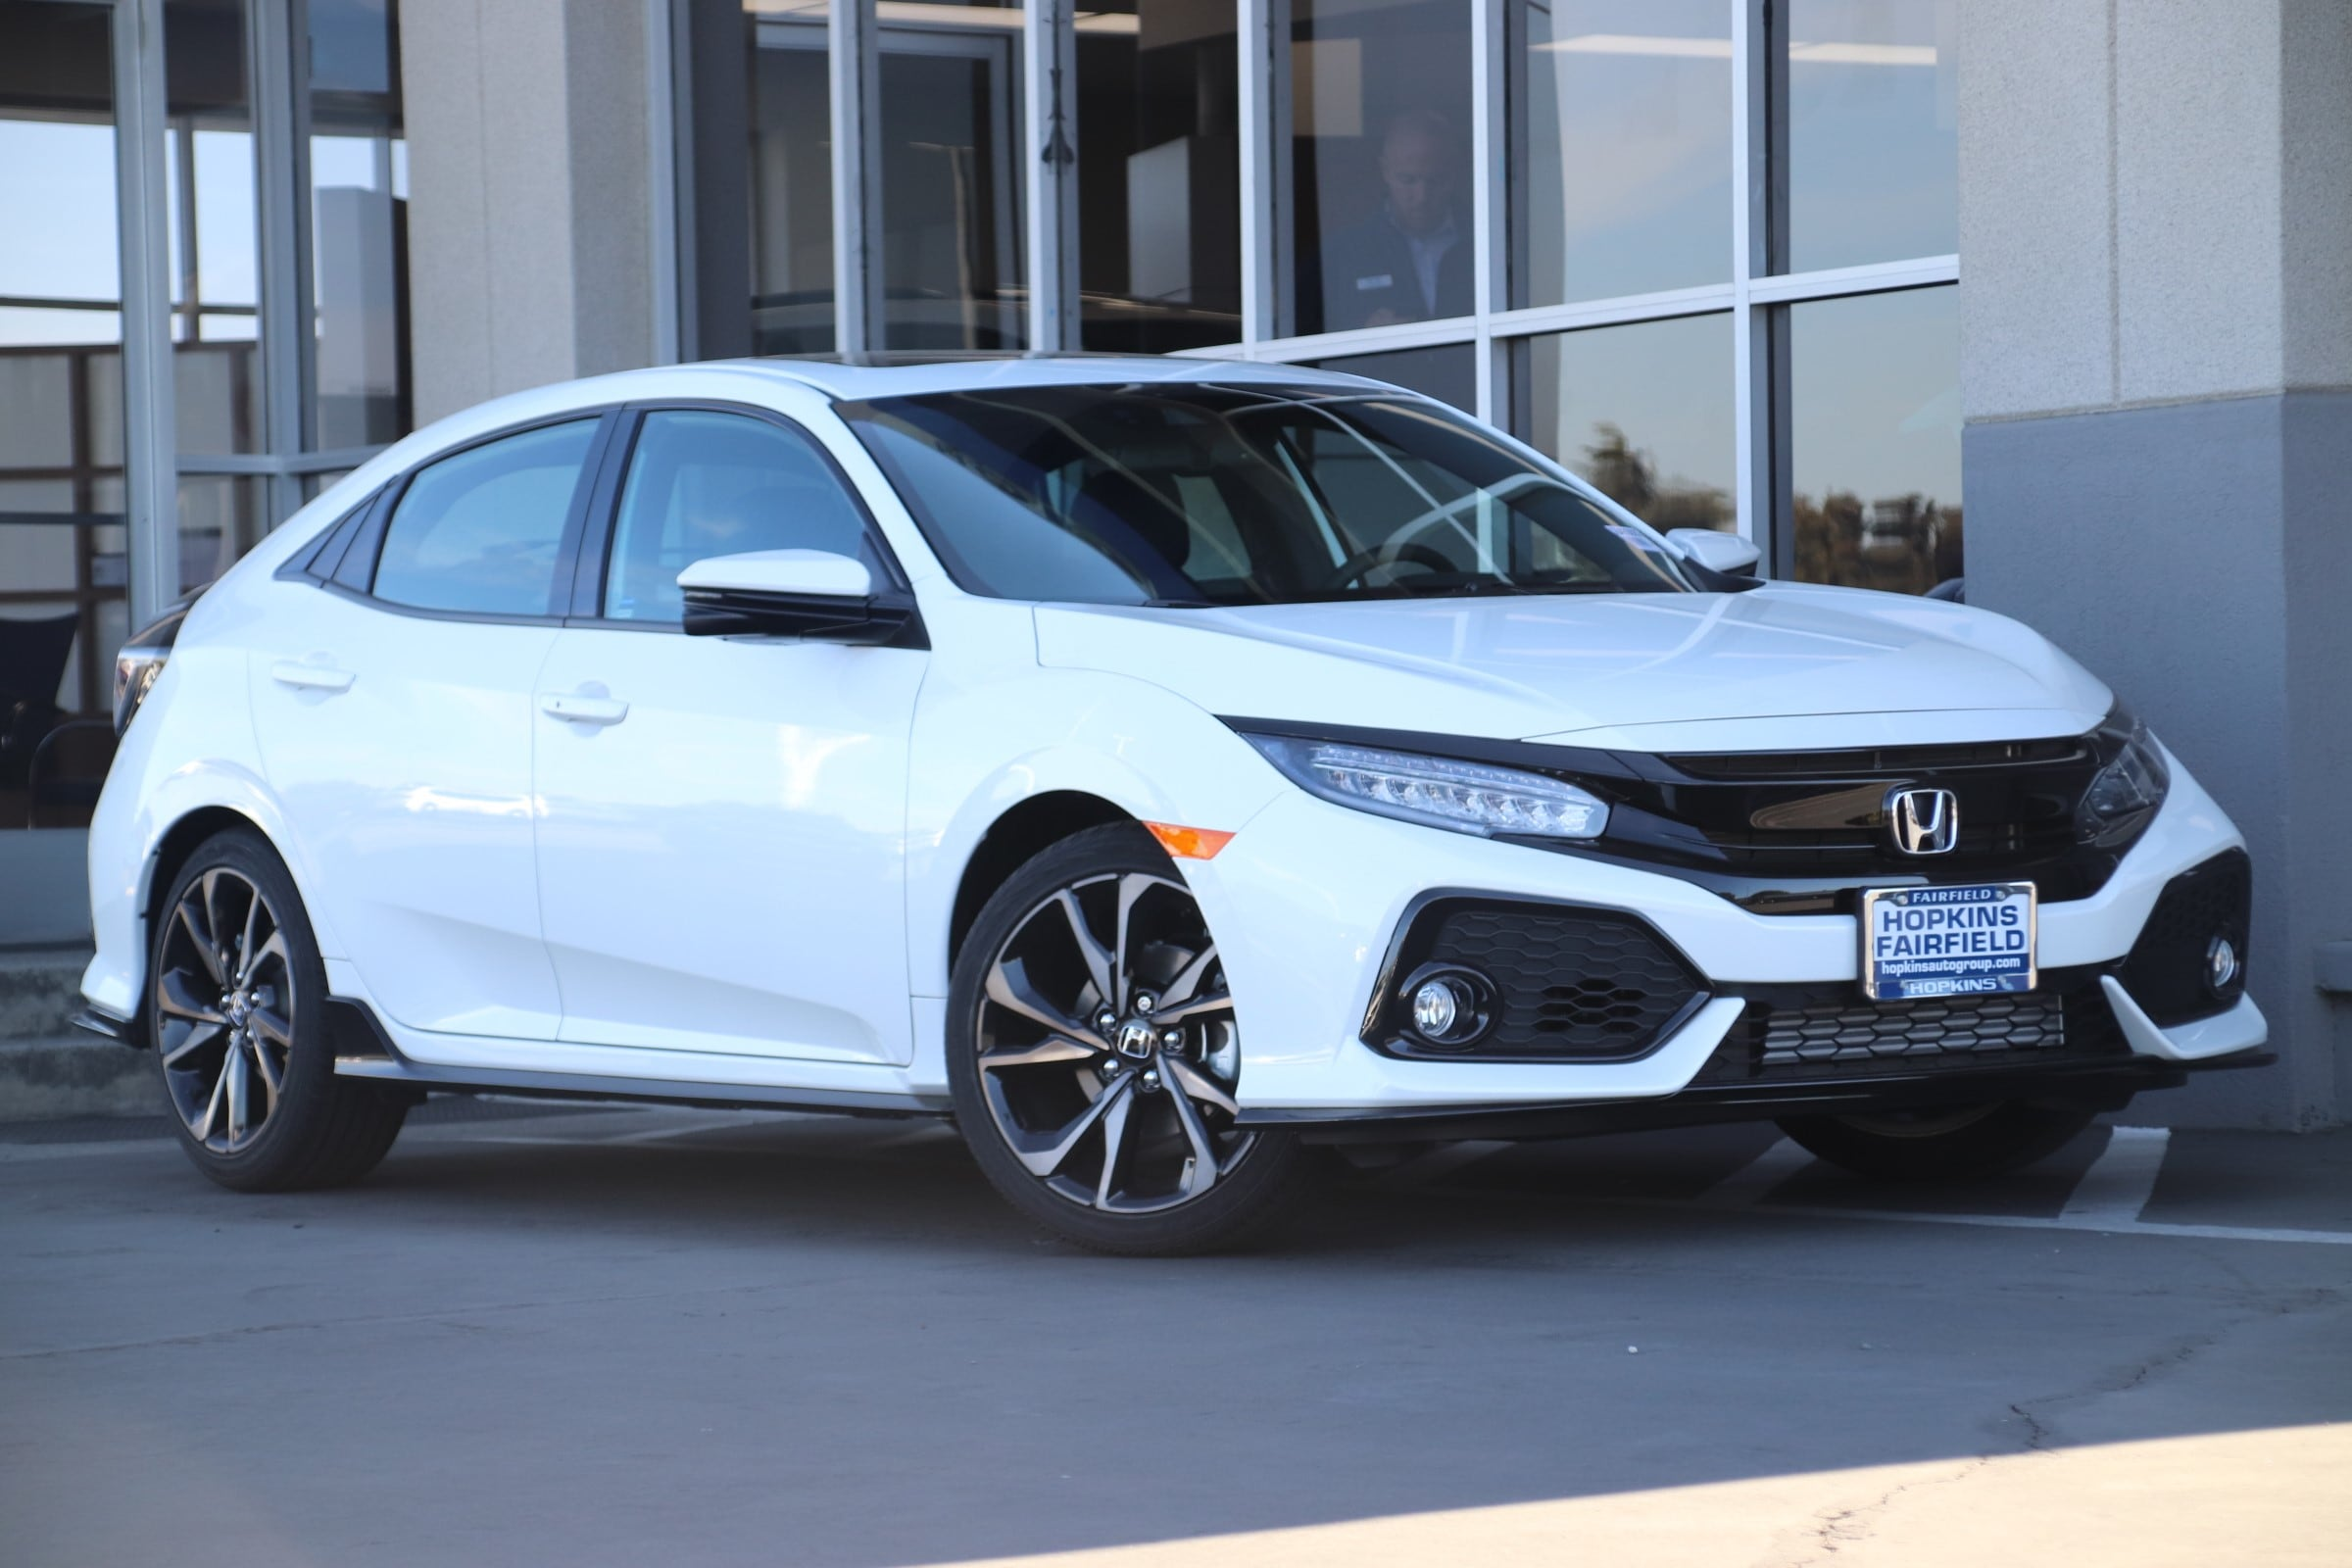 New 2018 Honda Civic Sport Touring Hatchback For Sale In Fairfield, CA